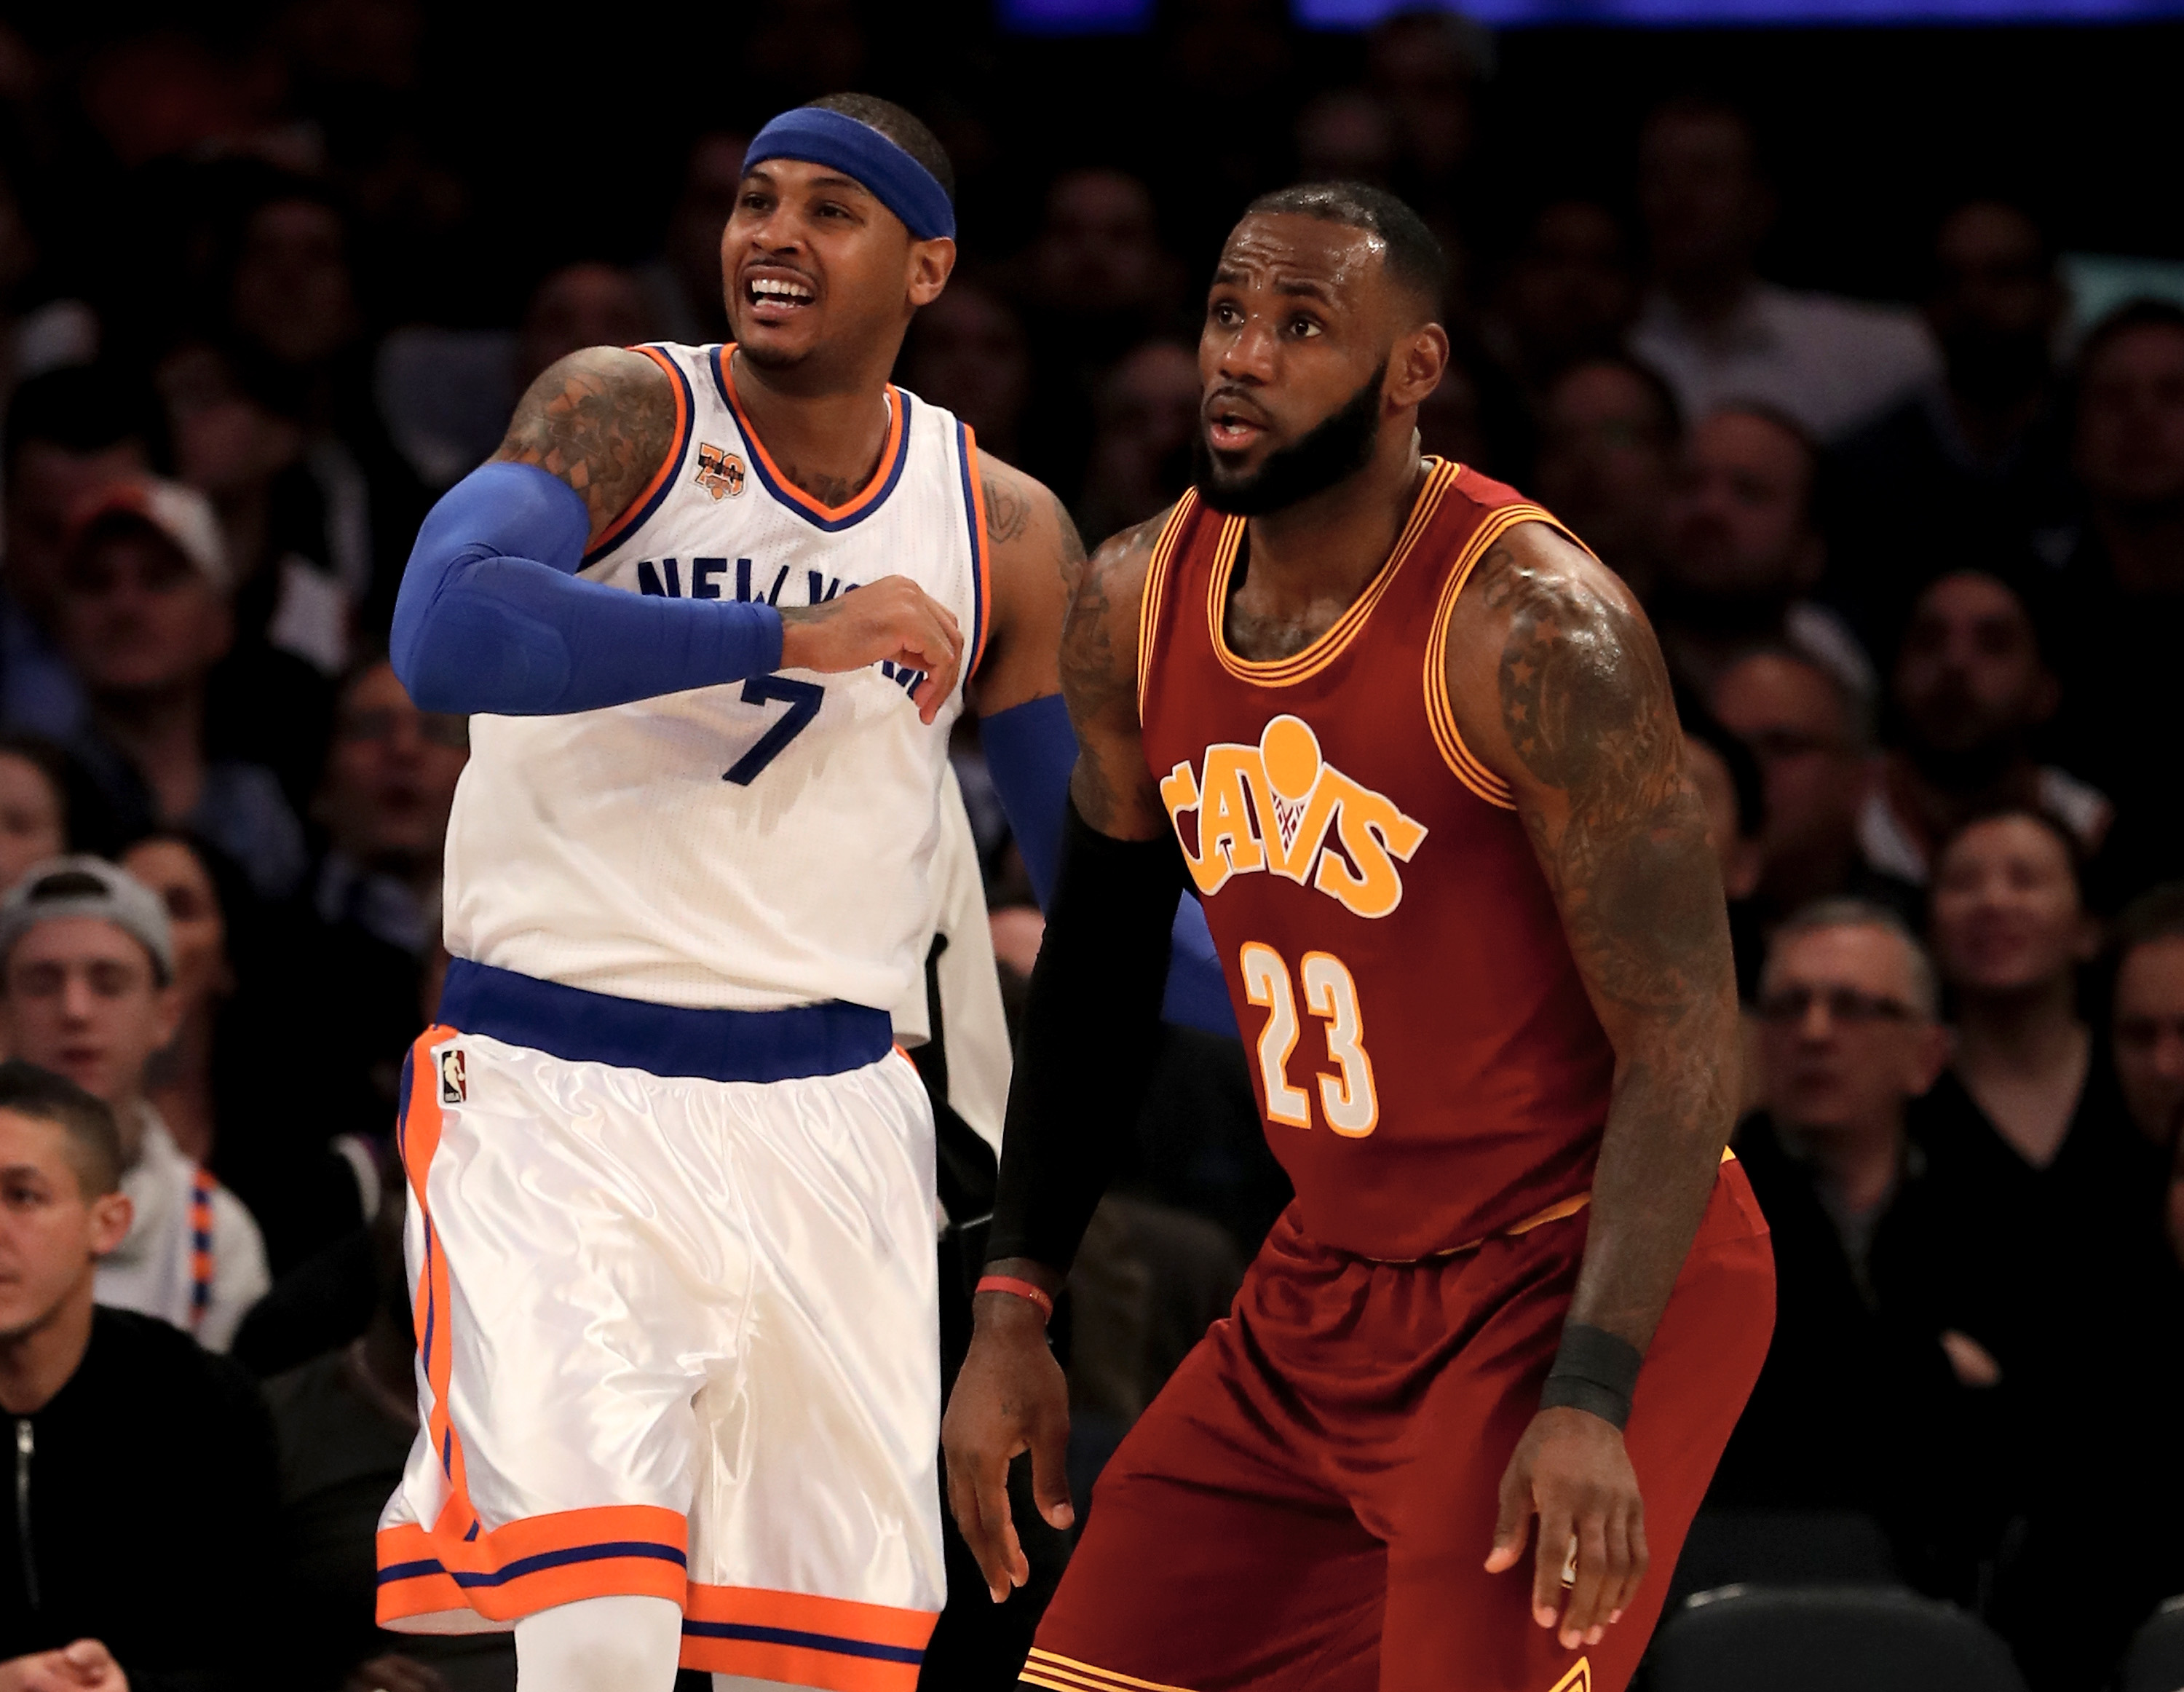 Knicks, Rockets working on Carmelo Anthony trade including 4-team deal